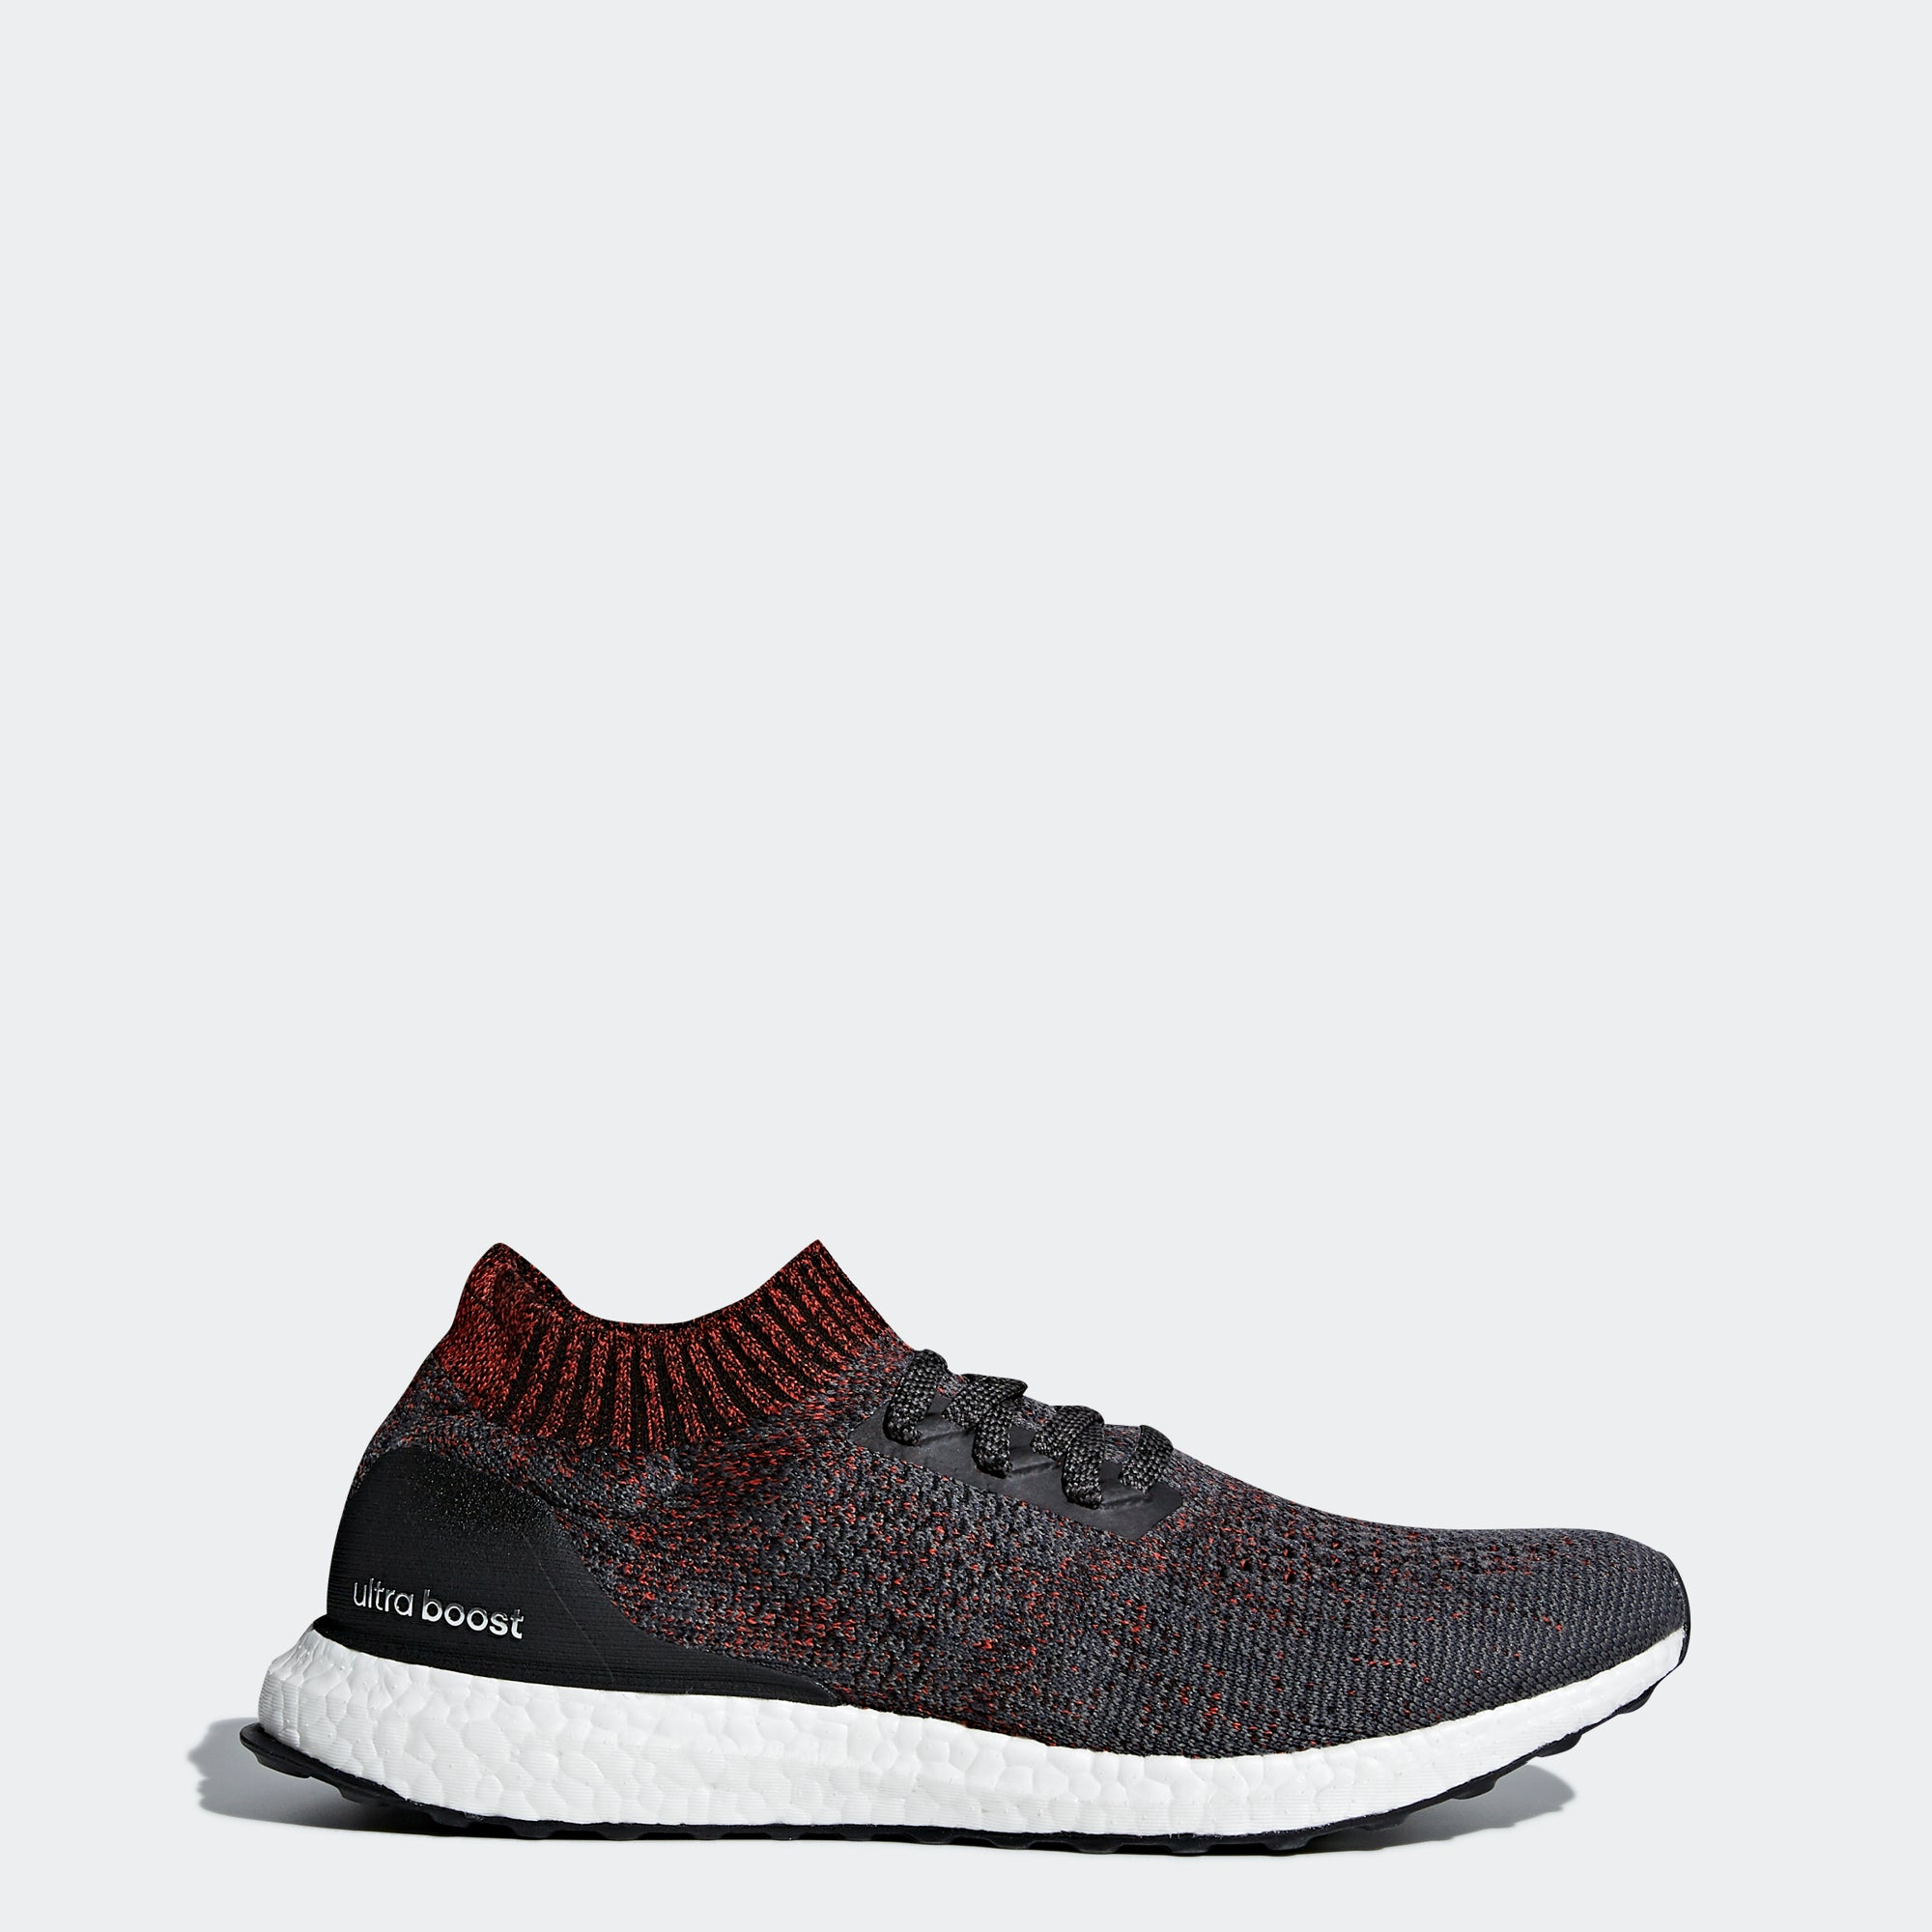 18a090db36595 Men s adidas Running Ultraboost Uncaged Shoes Carbon Dark Gray ...